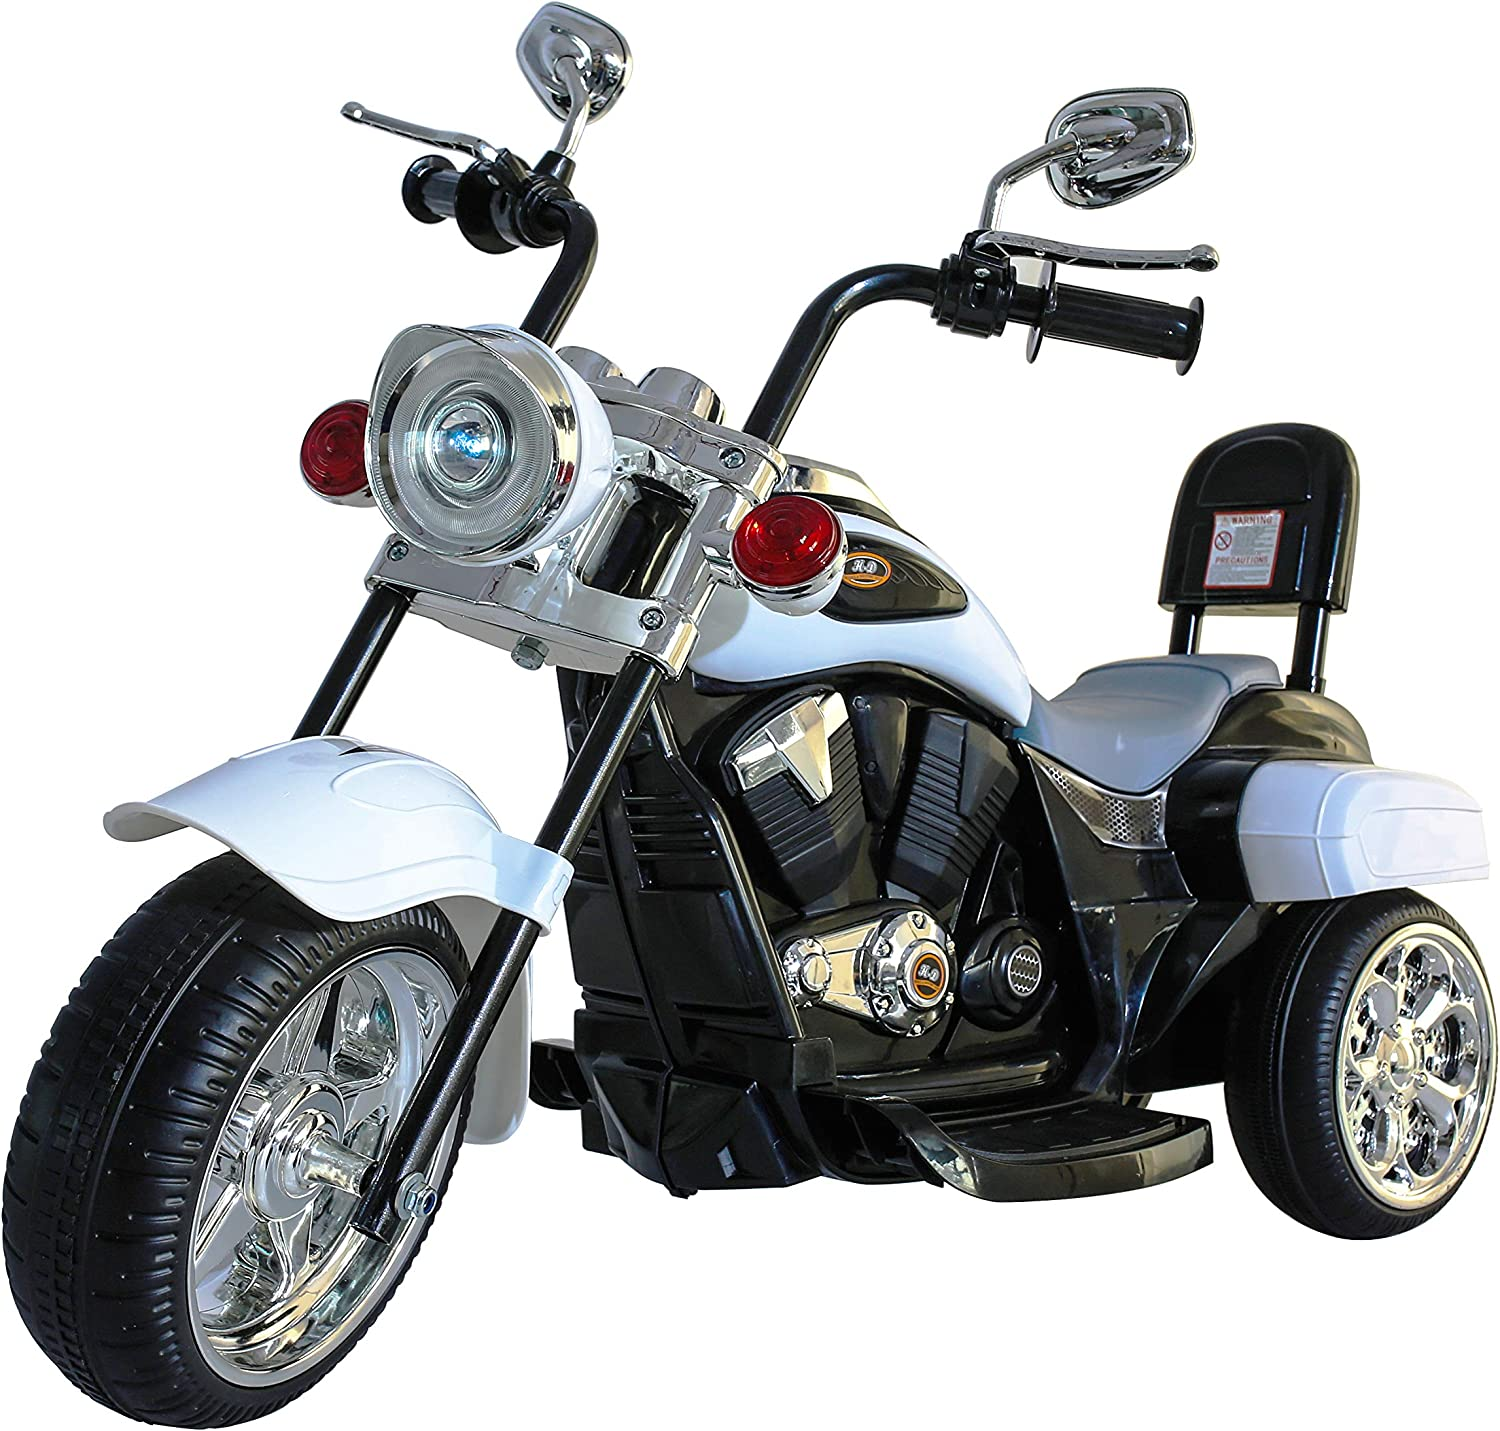 DTI DIRECT Chopper Style Electric